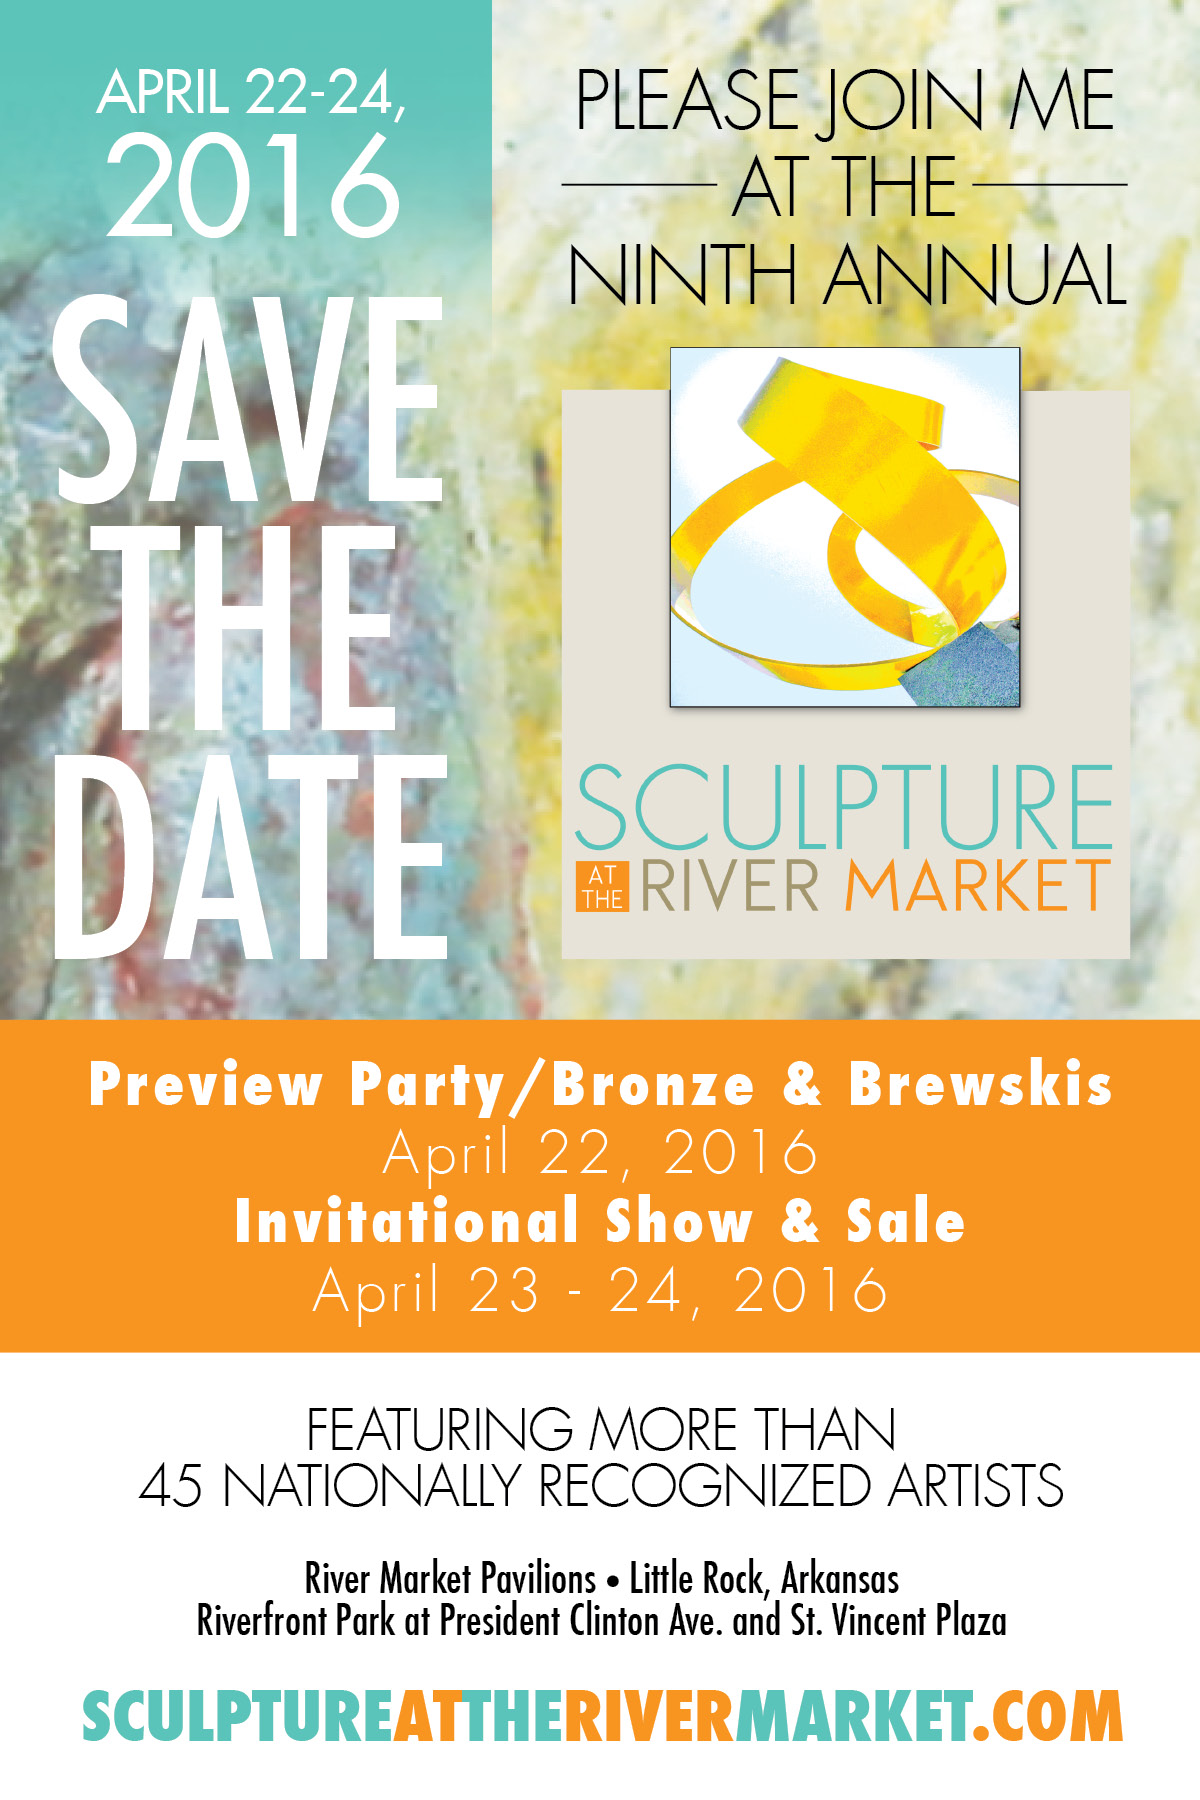 save the date 2016 show sale sculpture at the river market